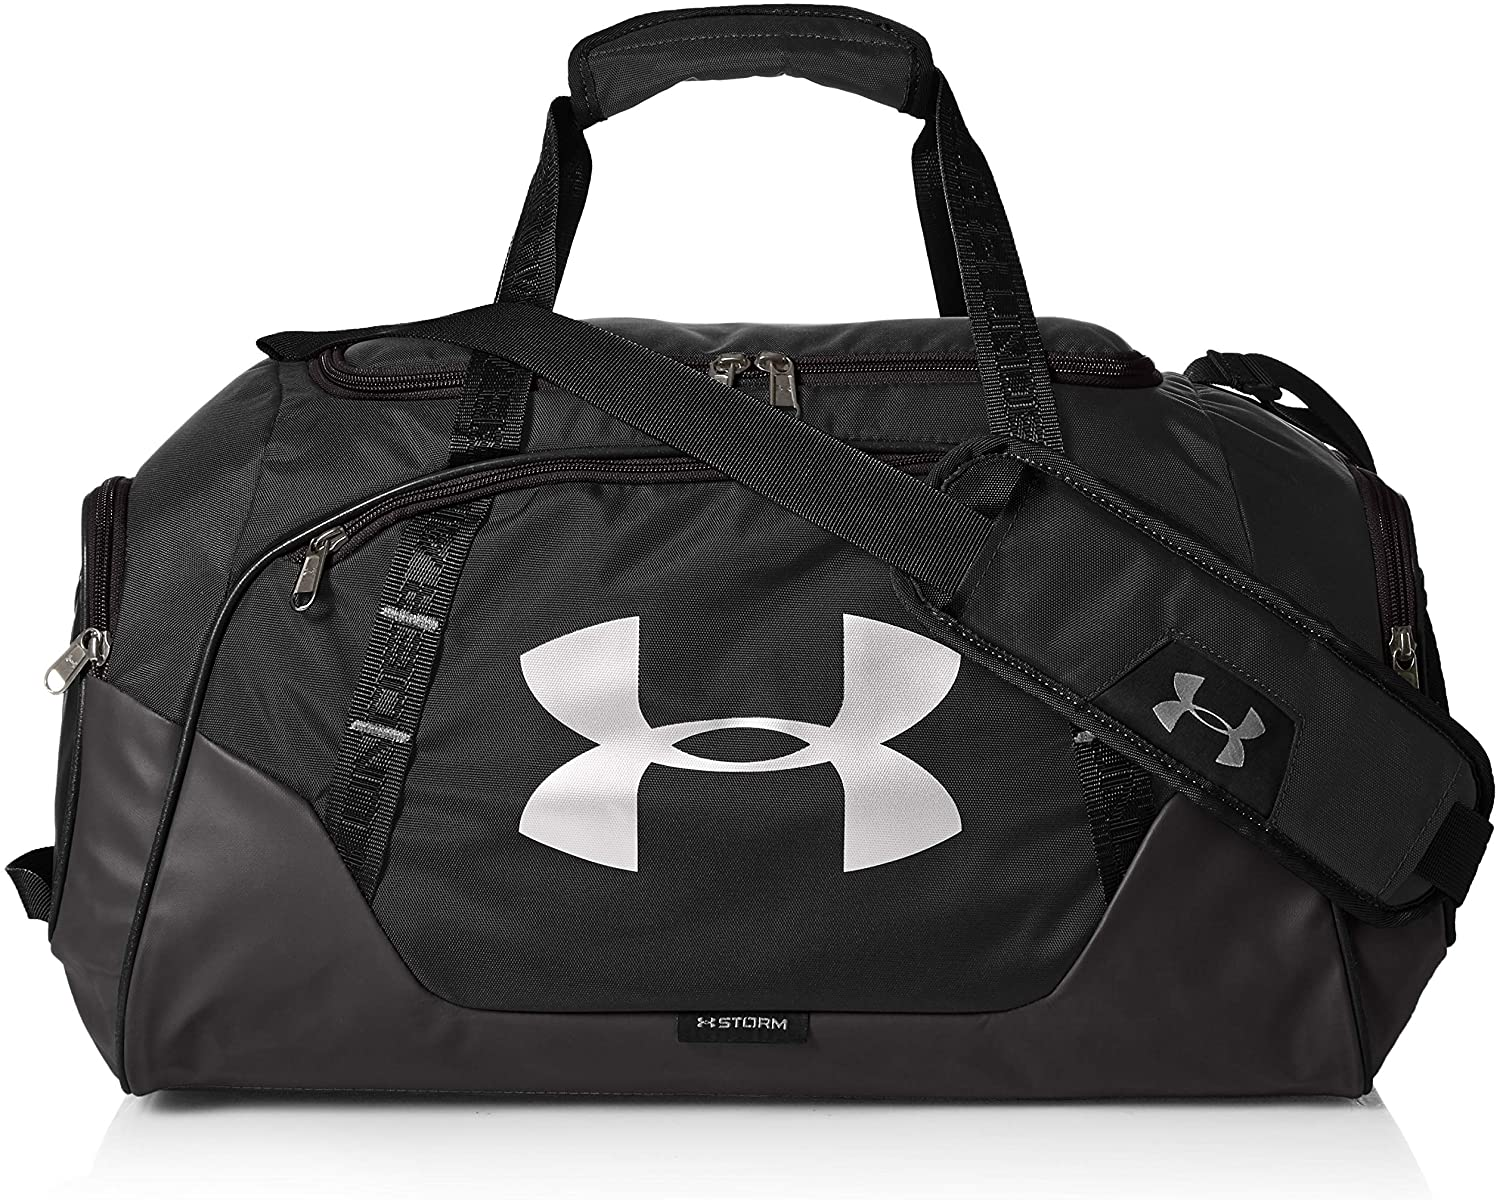 Under Armour Unisex-Adult Undeniable Duffle 2.0 Gym Bag